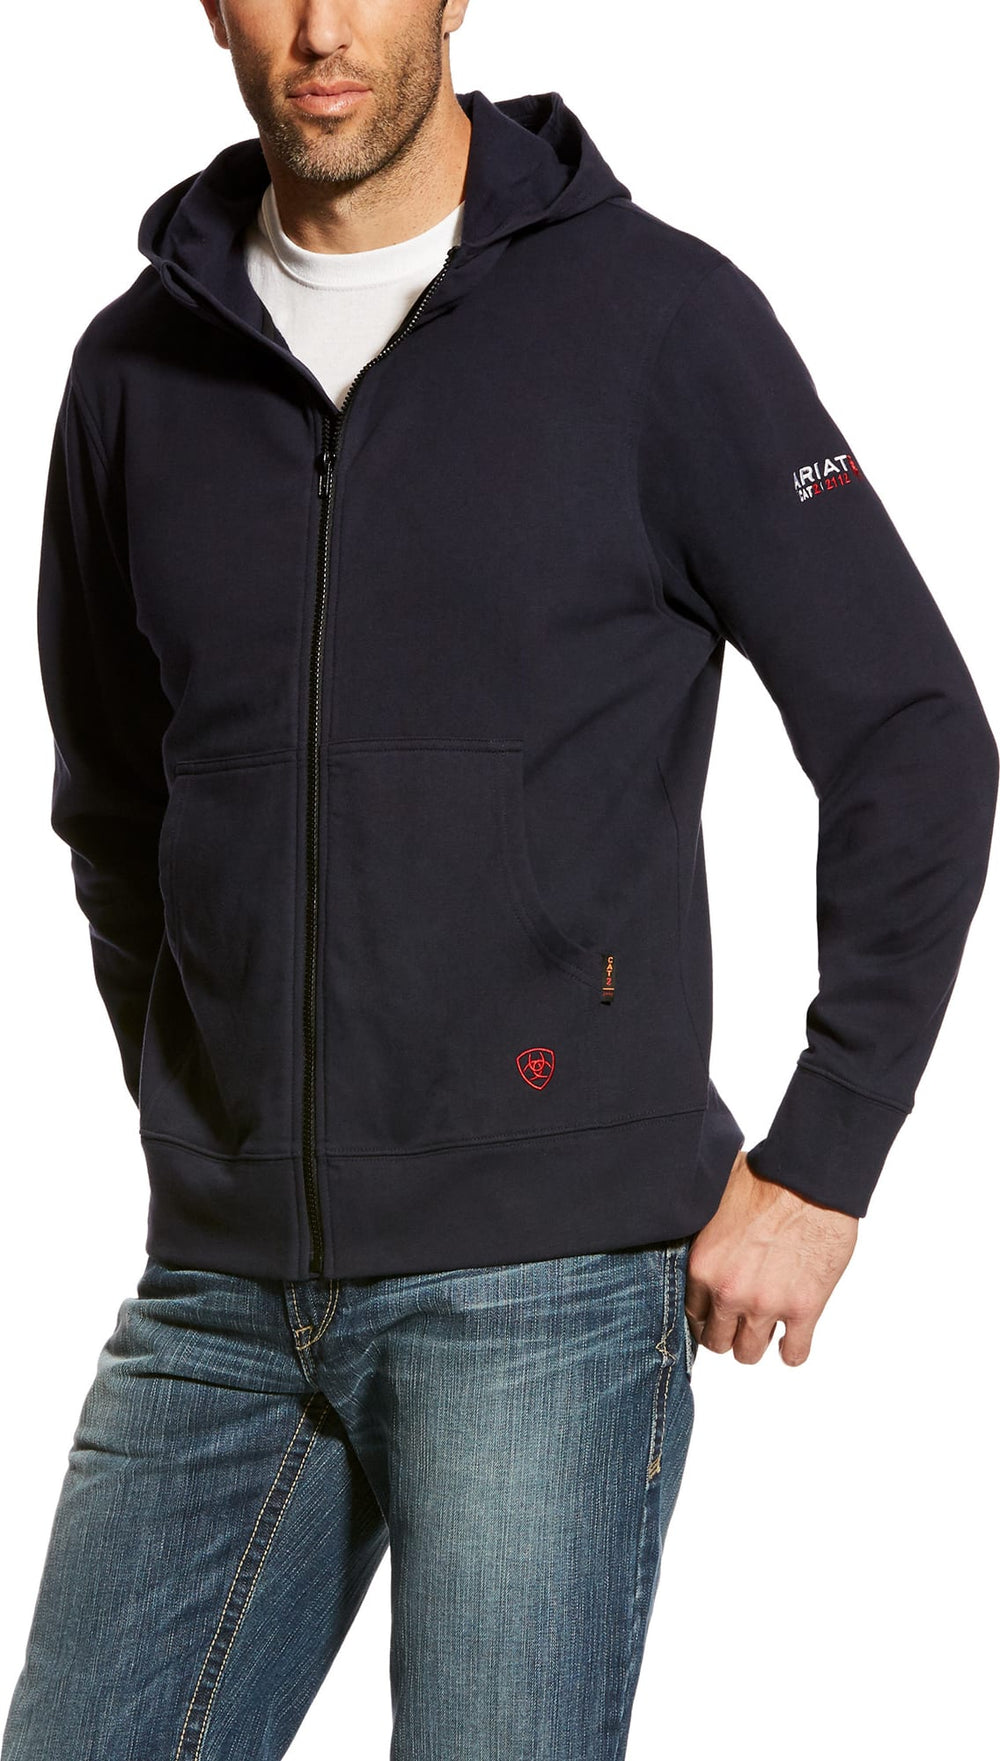 Ariat FR 10023979 Navy Durastretch Zip Up Hooded Sweatshirt